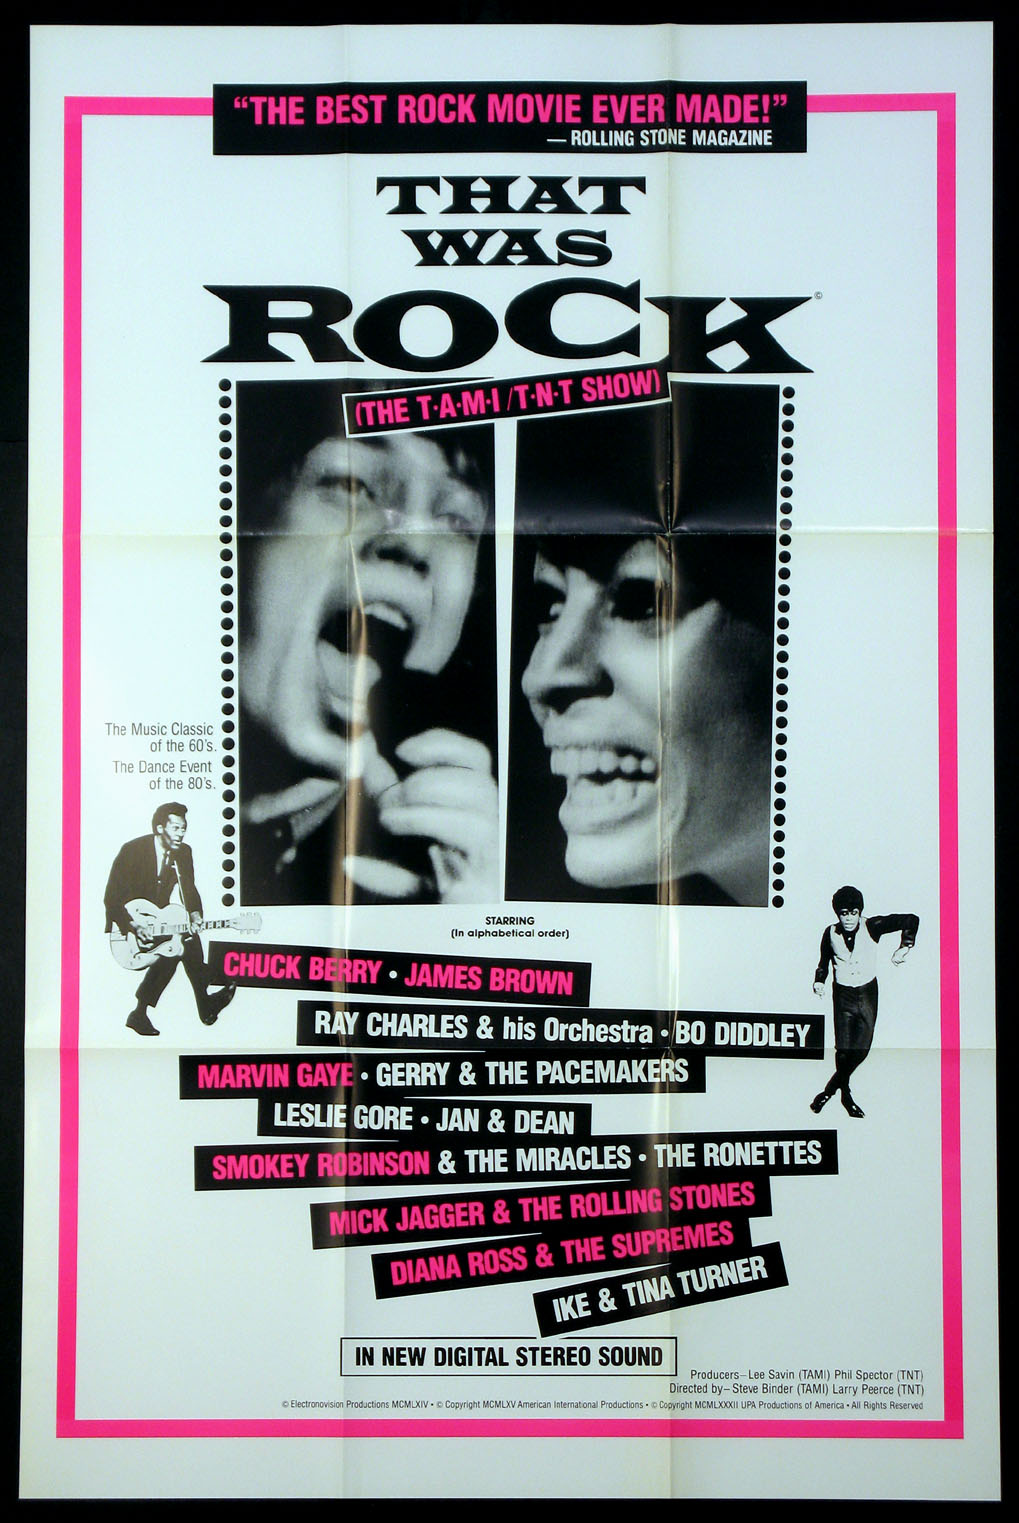 THAT WAS ROCK (T.A.M.I. & BIG T.N.T. Shows) @ FilmPosters.com